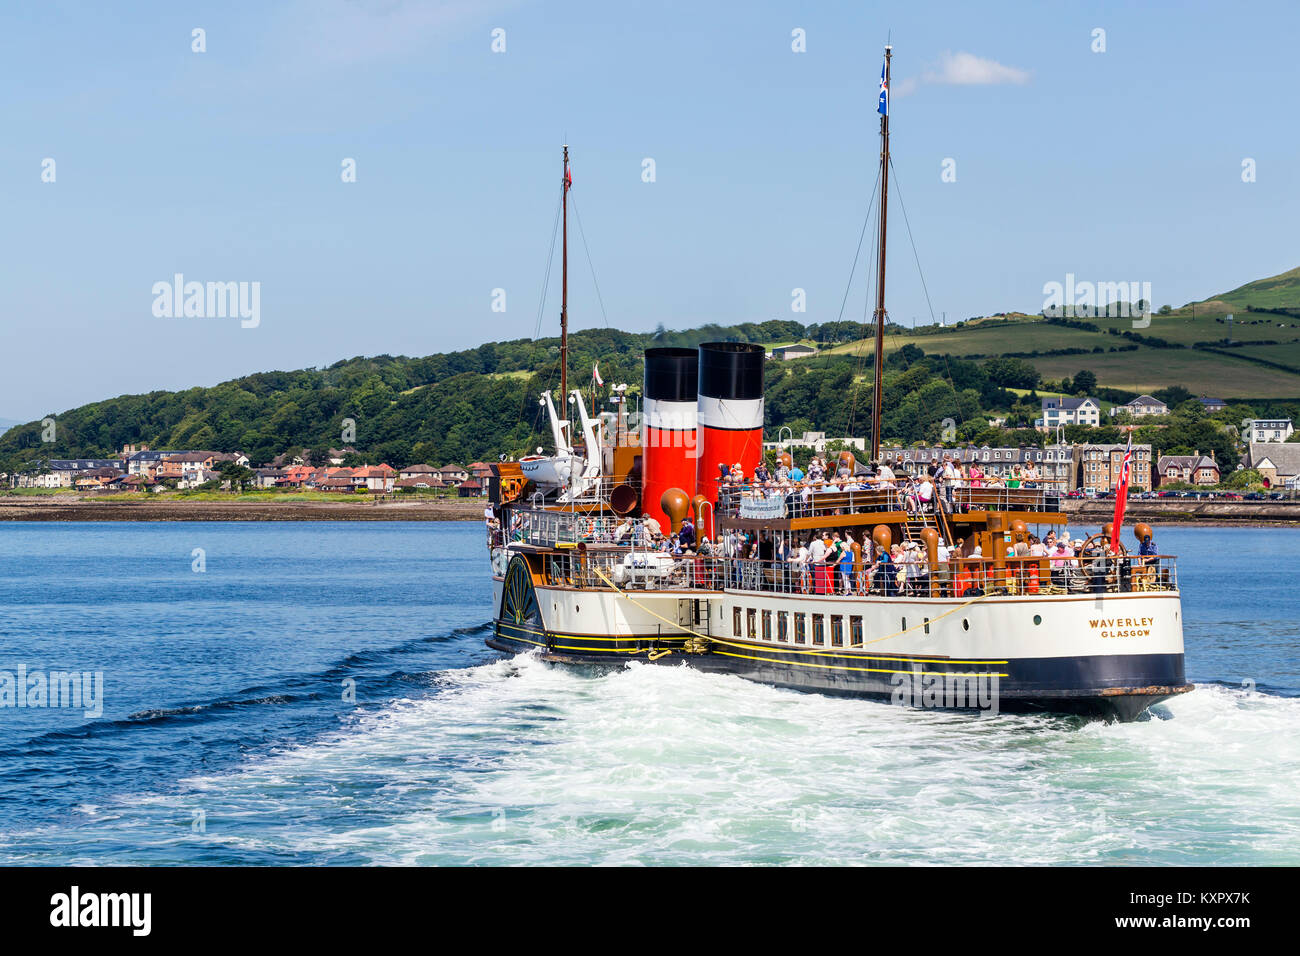 The Waverley Paddle Steamer departing from the town of Largs on the Firth of Clyde, North Ayrshire, Scotland UK - Stock Image